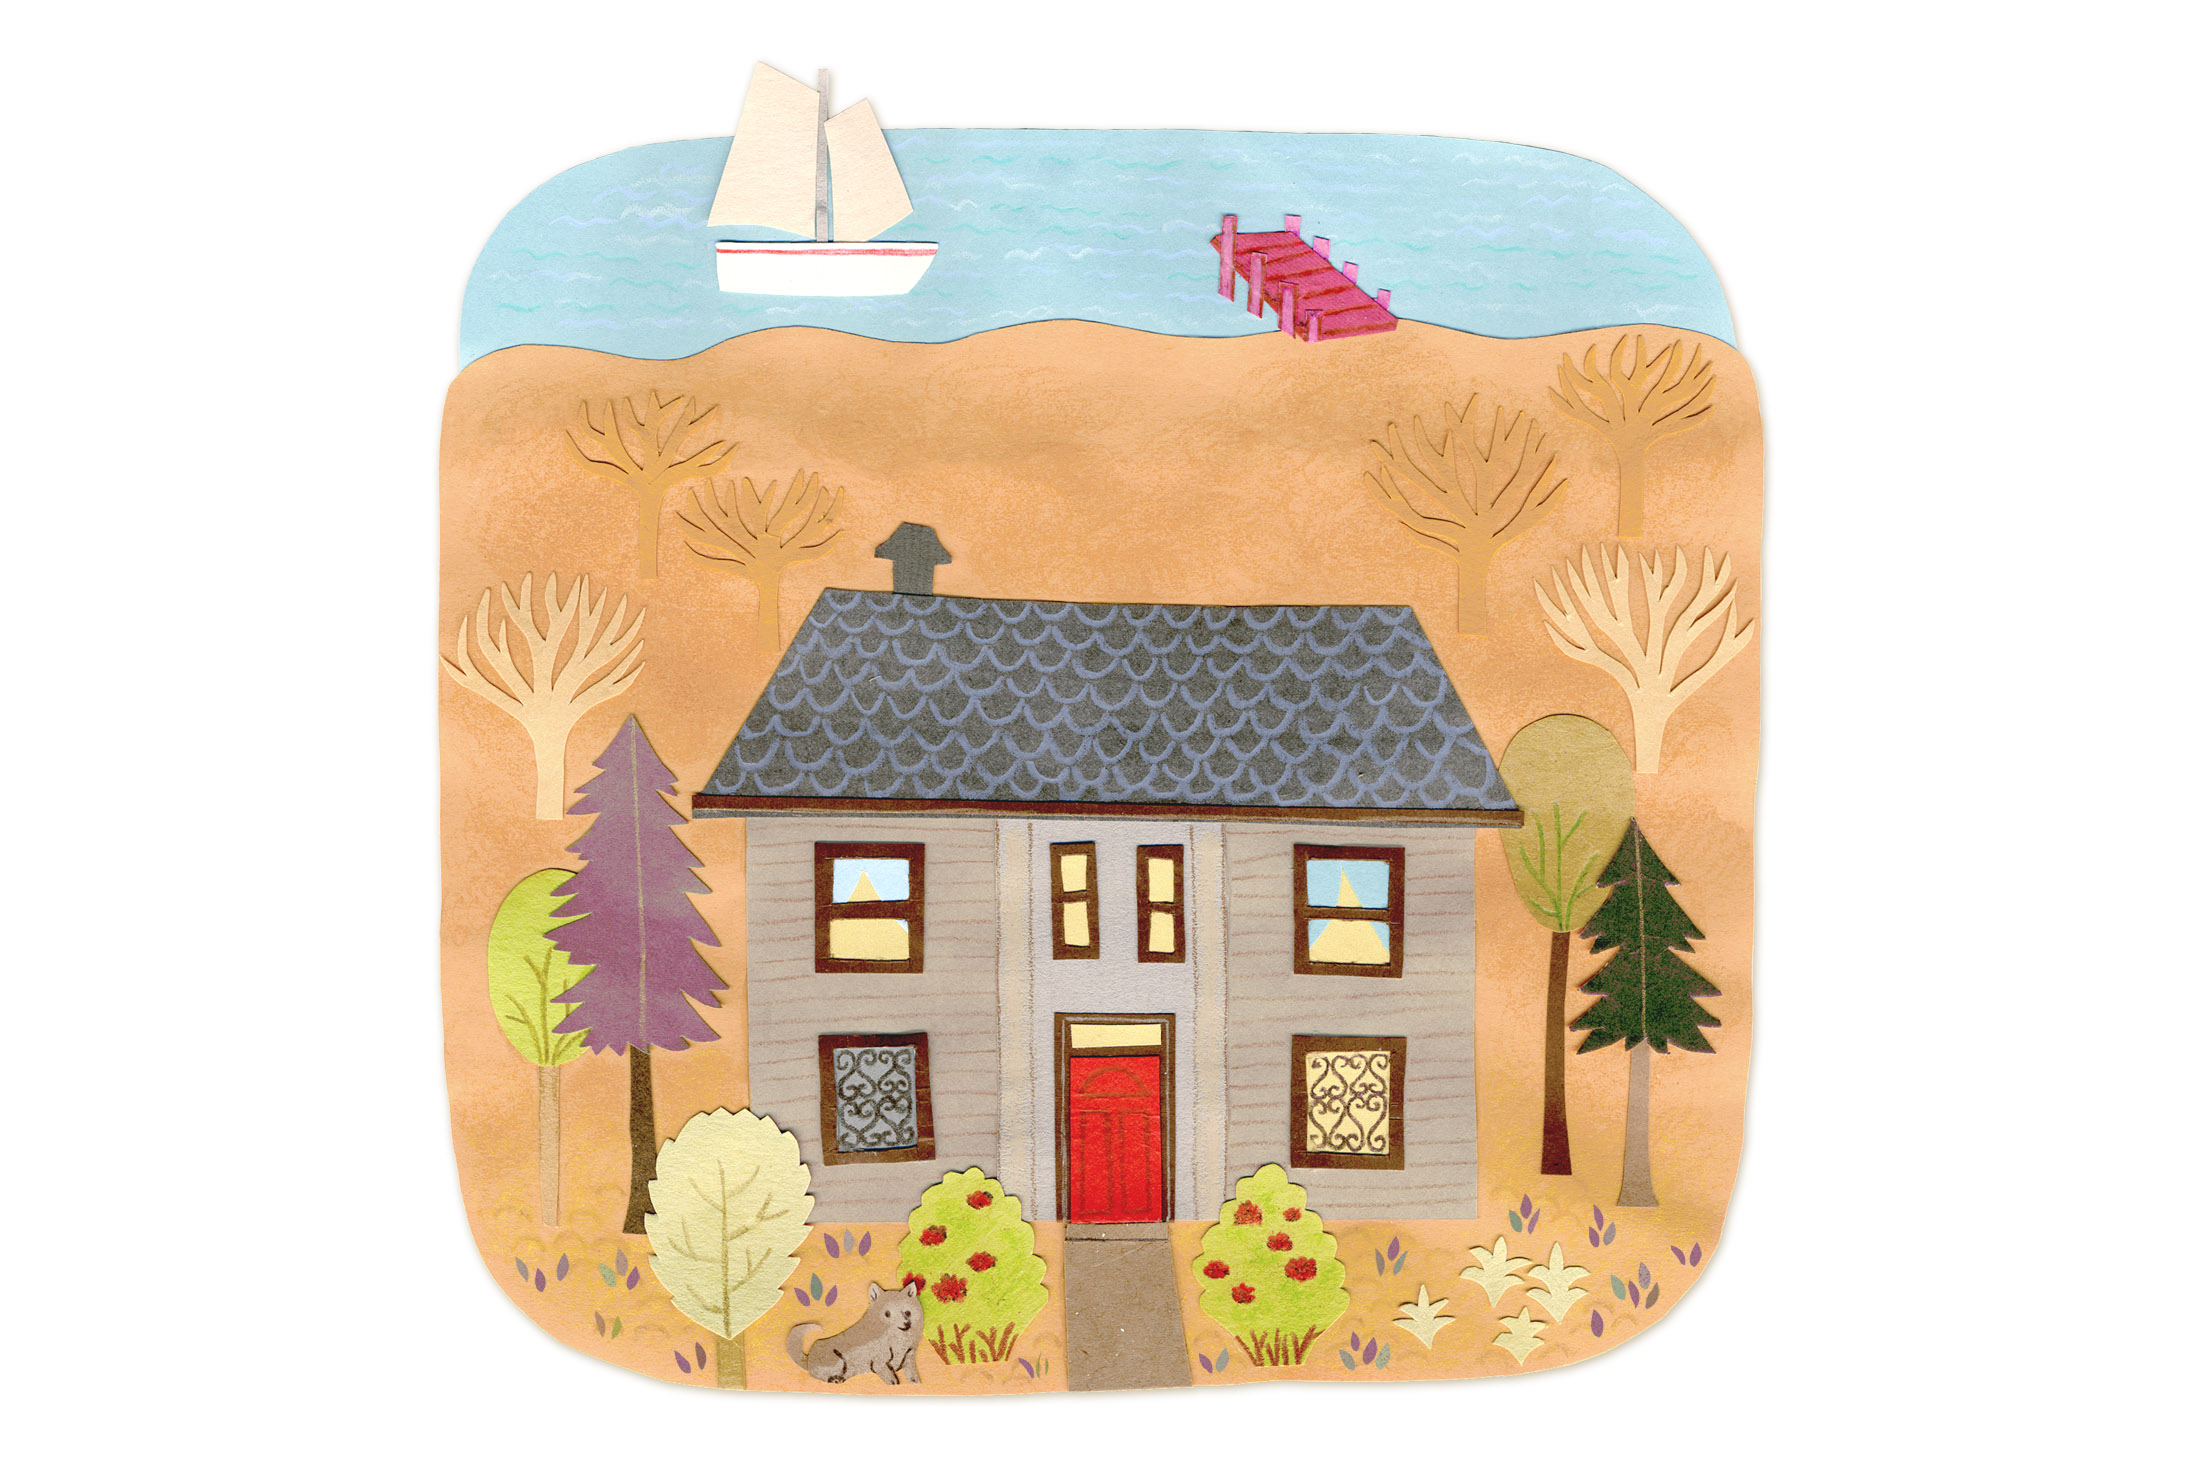 house_home_illustration.jpg